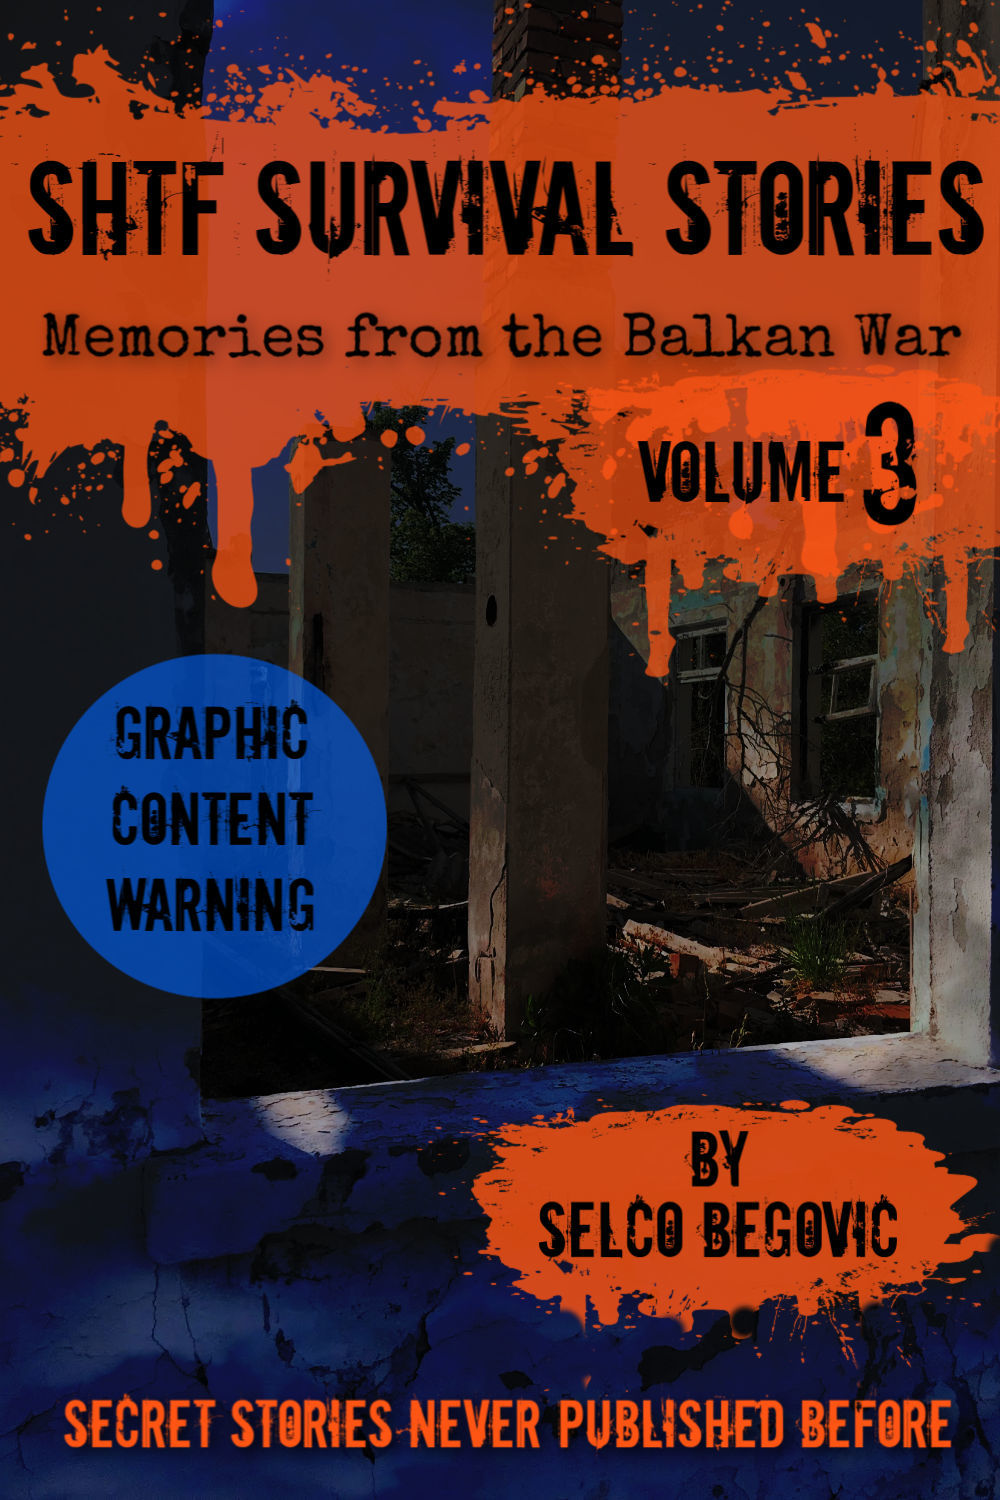 These stories from the Balkan War have never been published before in any format. They are a haunting read and truly some of Selco\'s finest work.